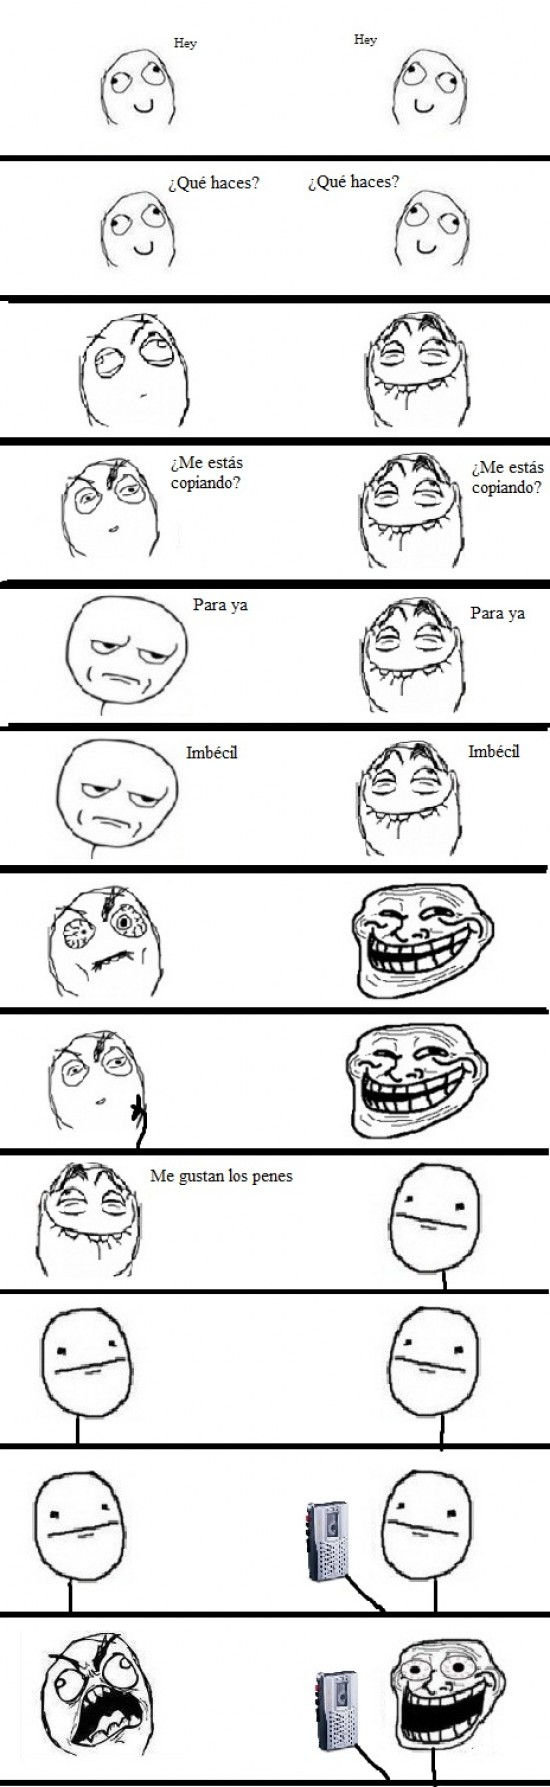 Trollface - Repeticiones